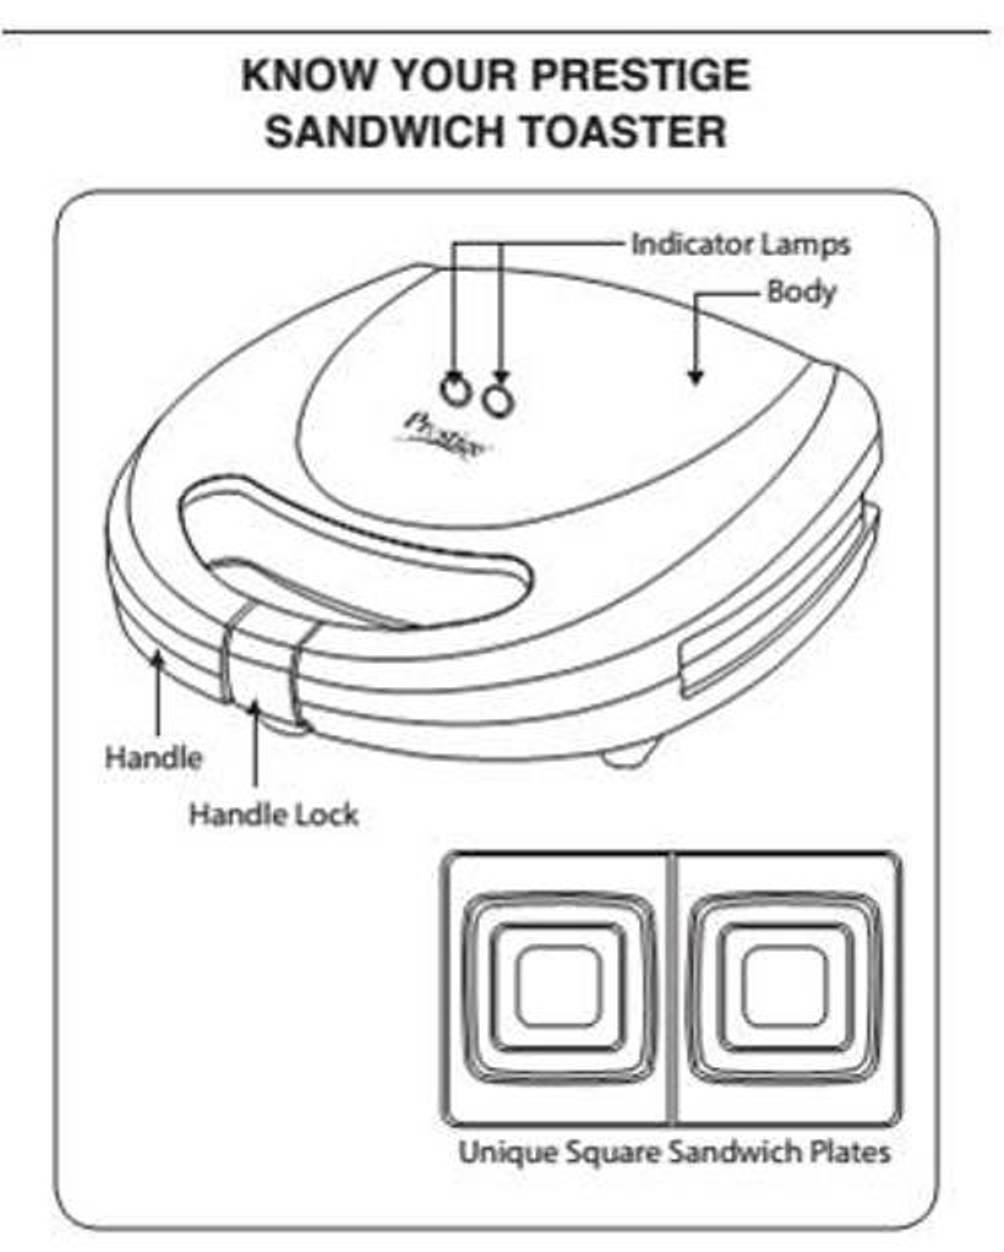 Buy Prestige Psqfb 41490 700 Watt Sandwich Toaster Black Online At Wiring Diagram For Low Prices In India